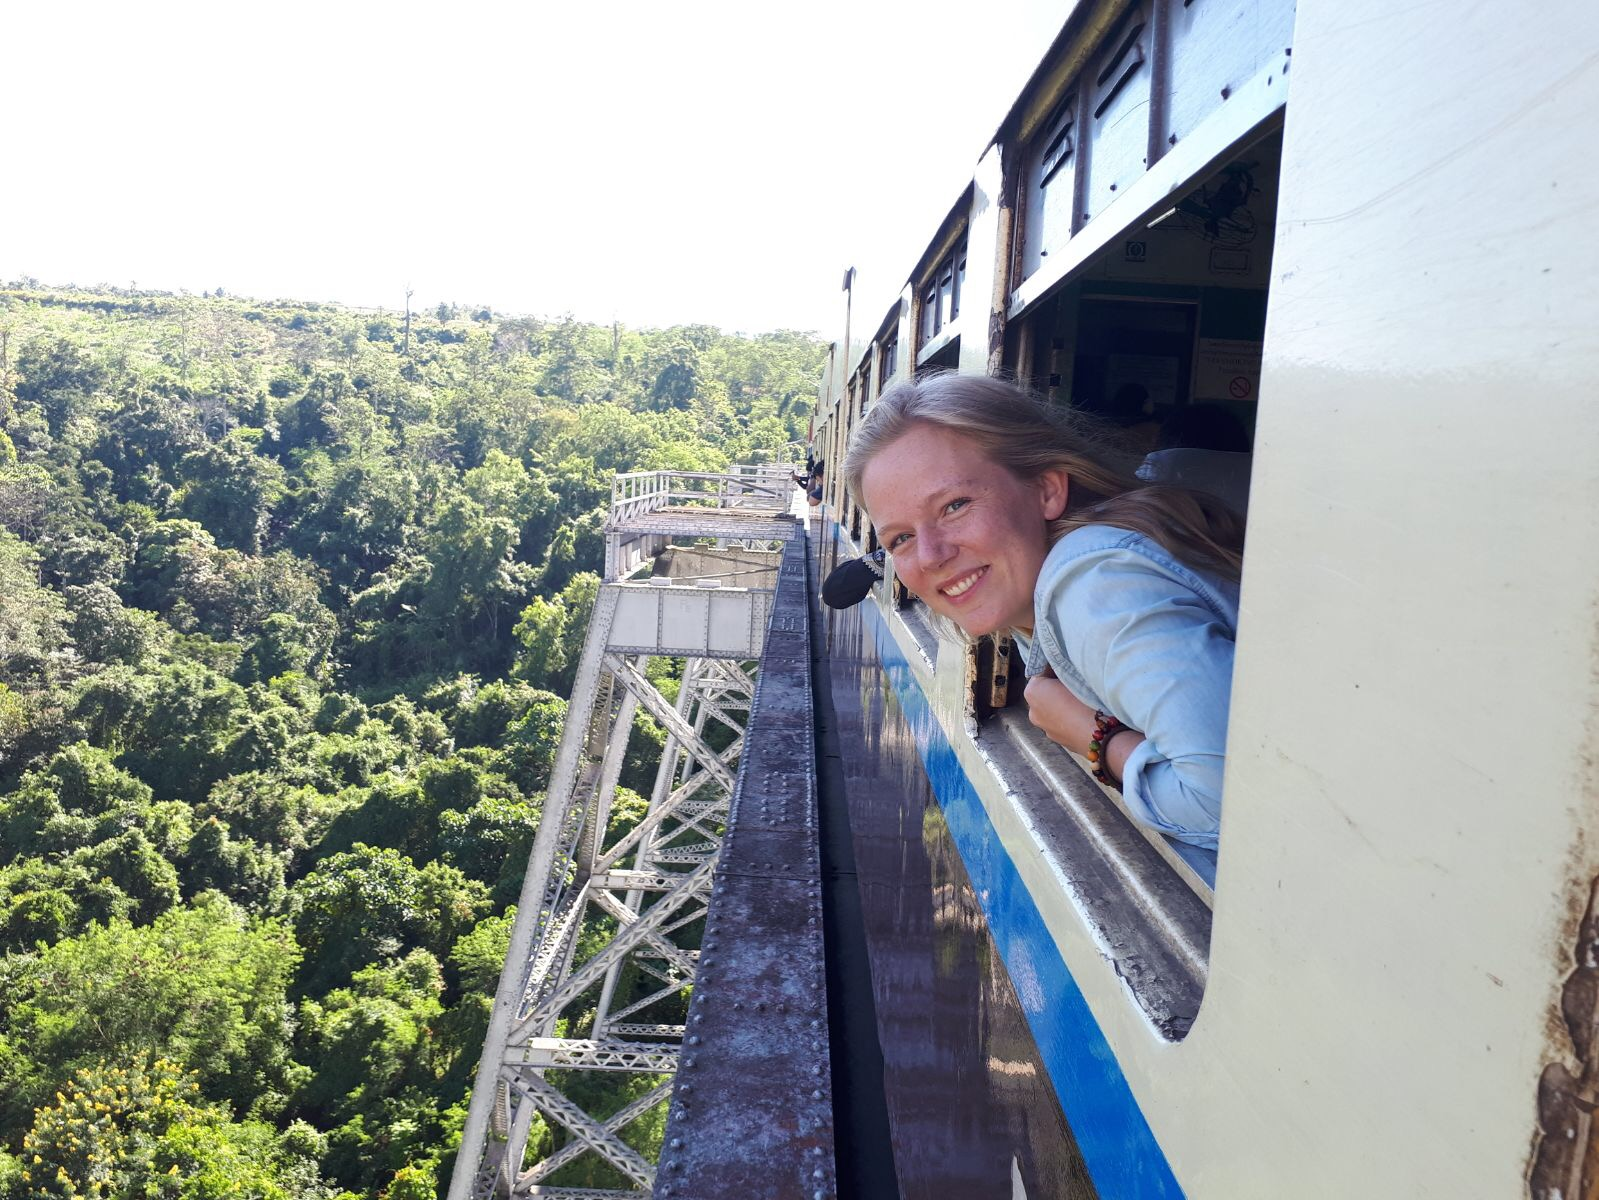 The Gokteik Viaduct | Myanmar Train Travel | From Hsipaw to Pyin Oo Lwin